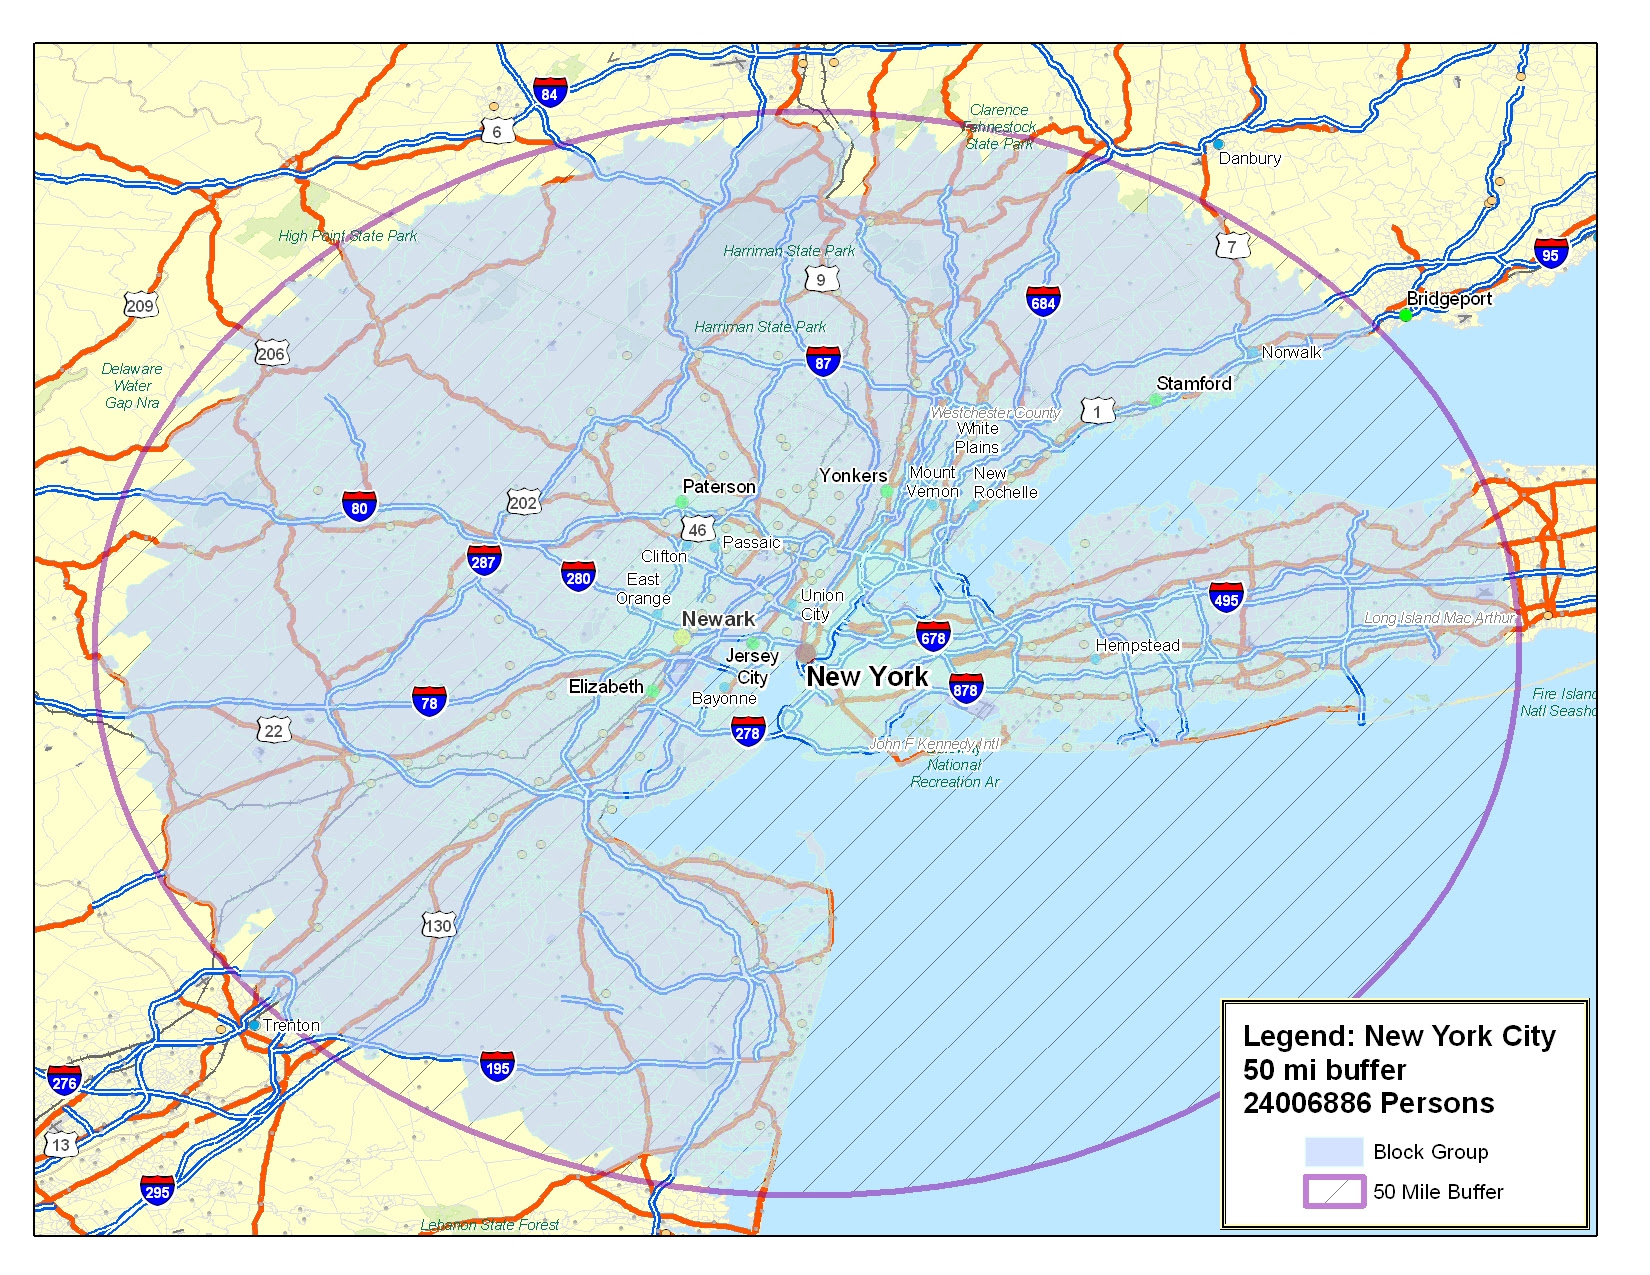 50 Mile Radius Map - DANIELELINA  Mile Radius Map on